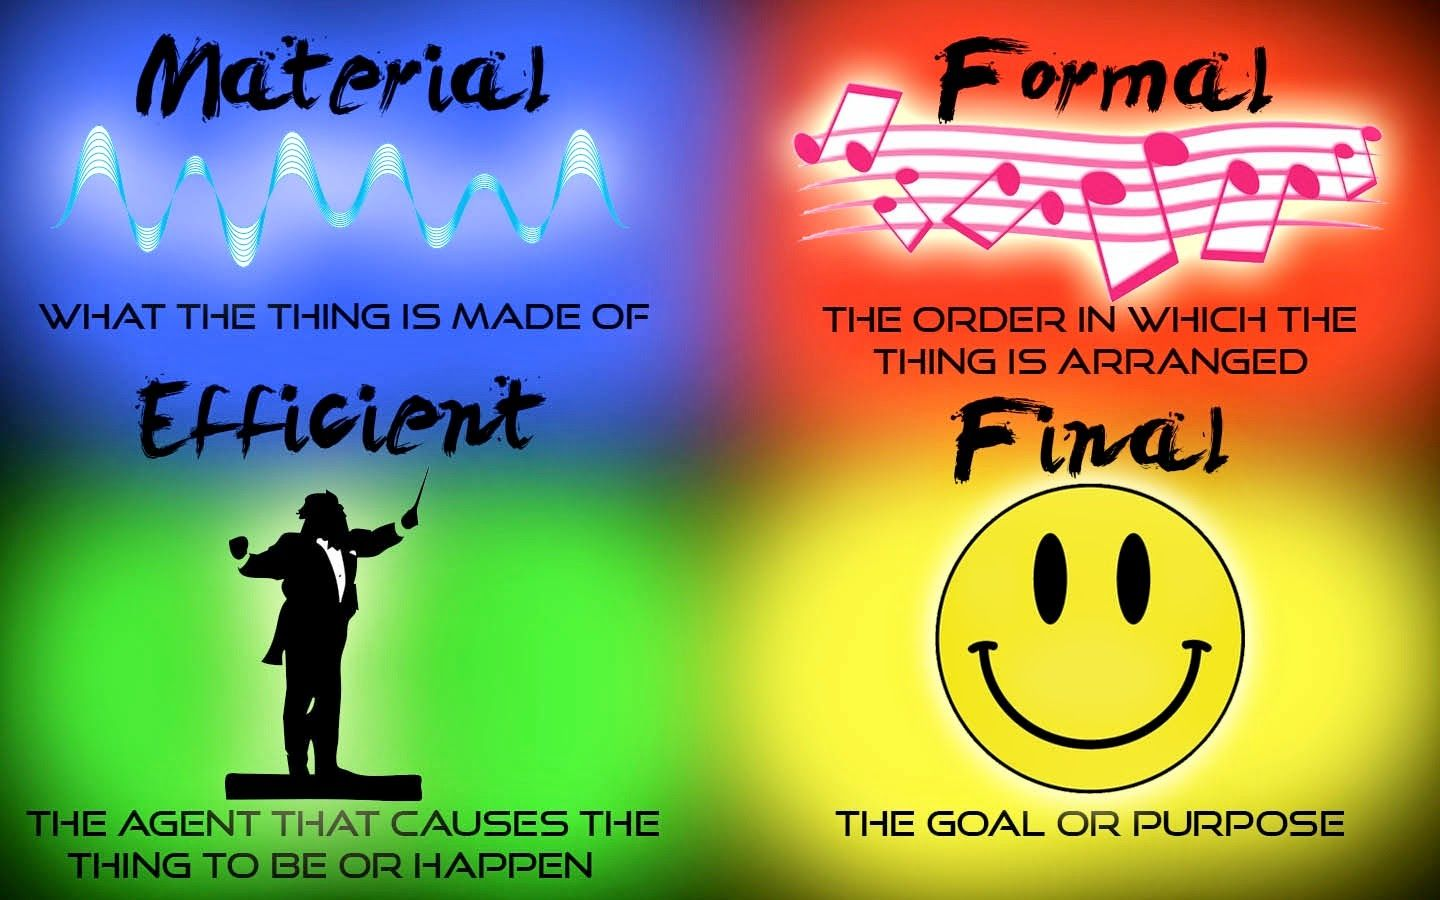 aristotle s four causes essay Aristotle – four causes of things (a chair): 1 the formal cause: that of which it is made, its form or essence (chairness) 2 the material cause: that out of.